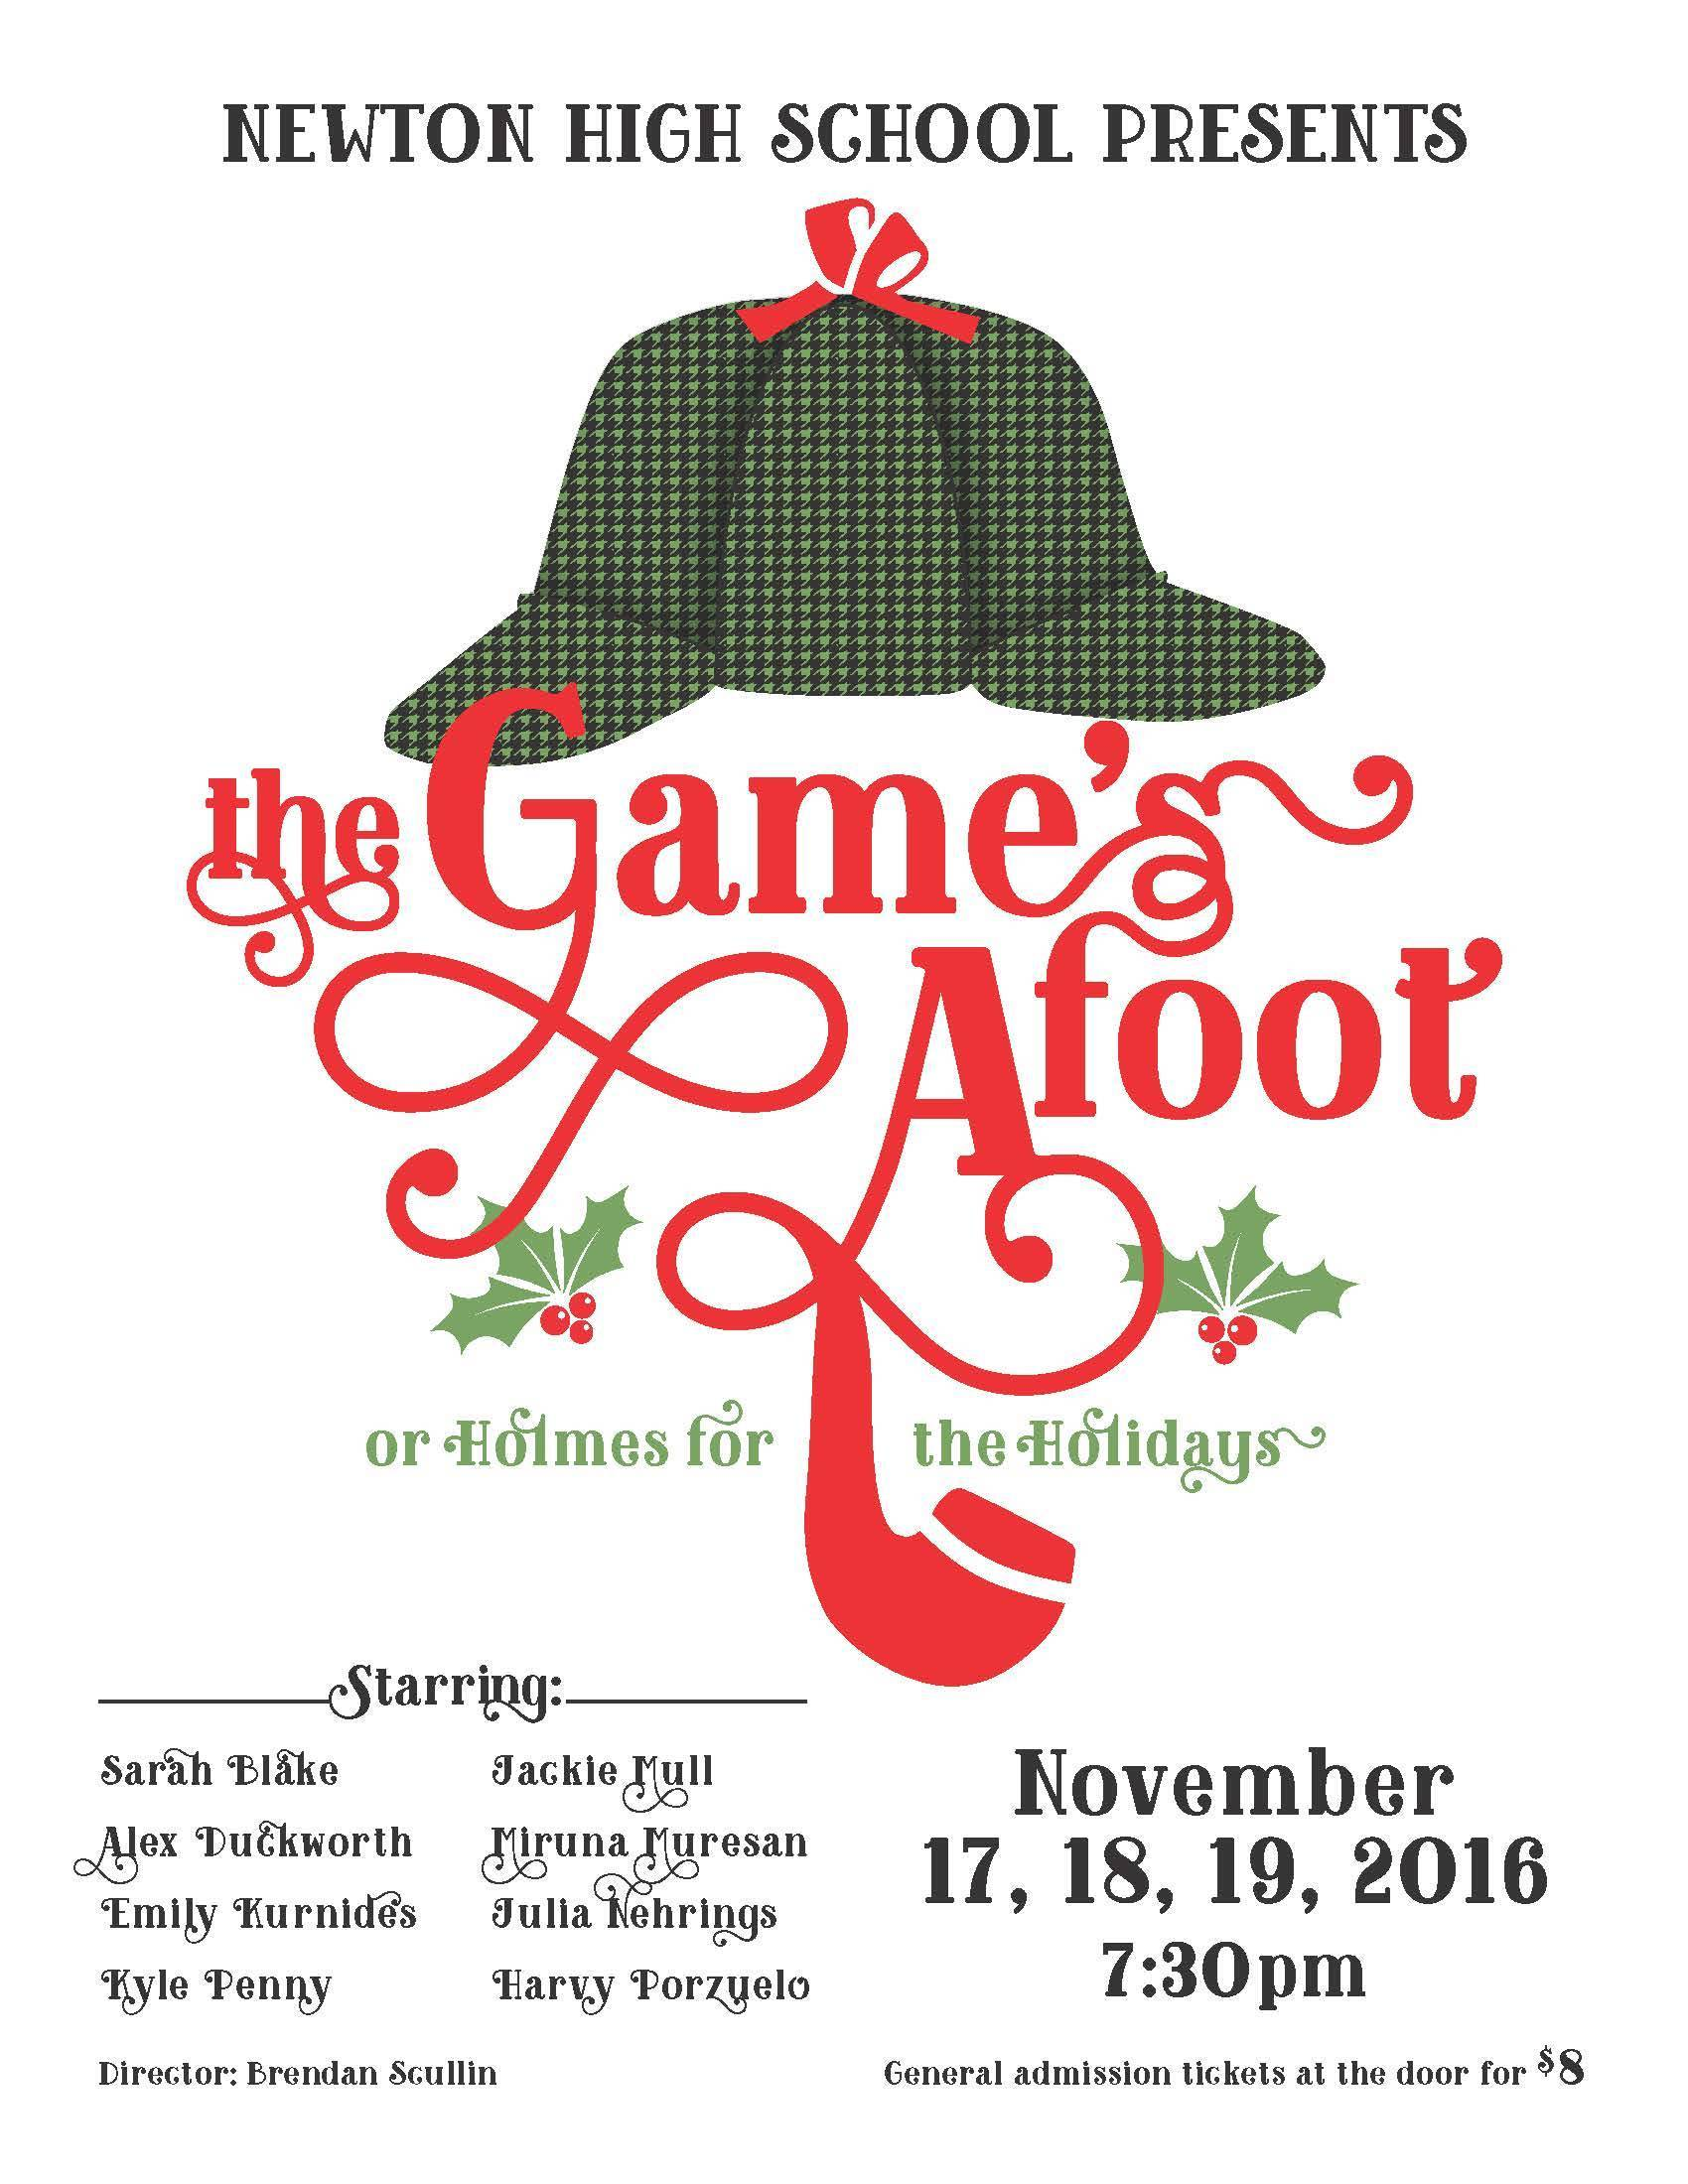 041db82ca7d53f7ae6f5_Game_is_Afoot_flyer_color_2.jpg